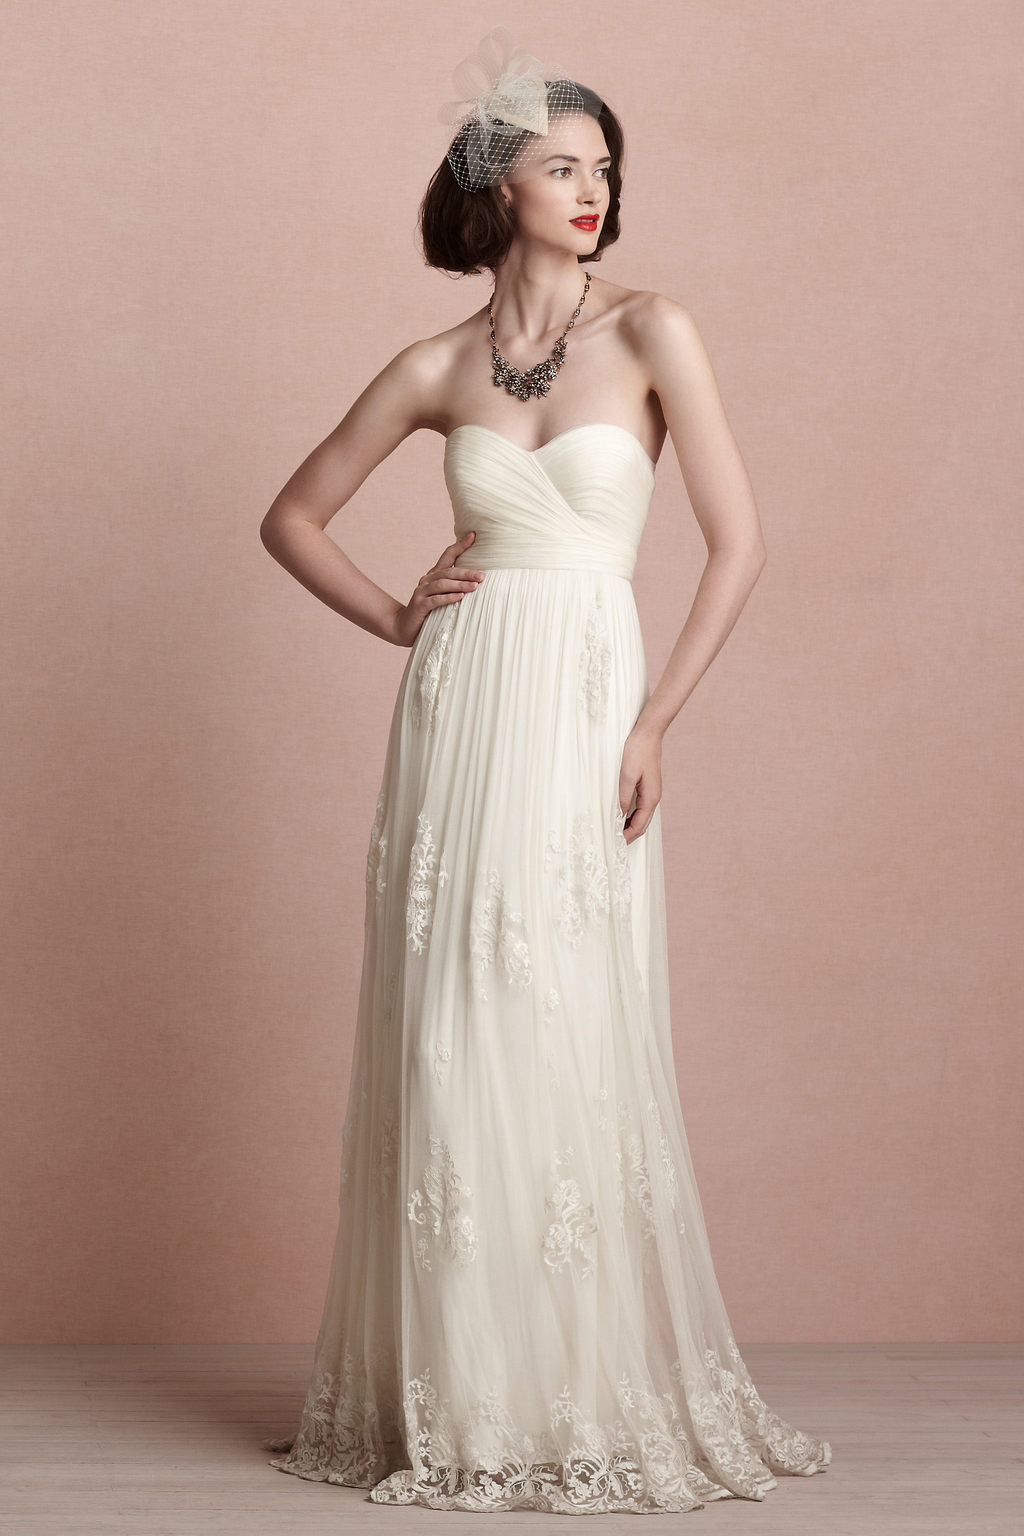 New-bhldn-wedding-dress-for-brides-wedding-giveaway-4.full